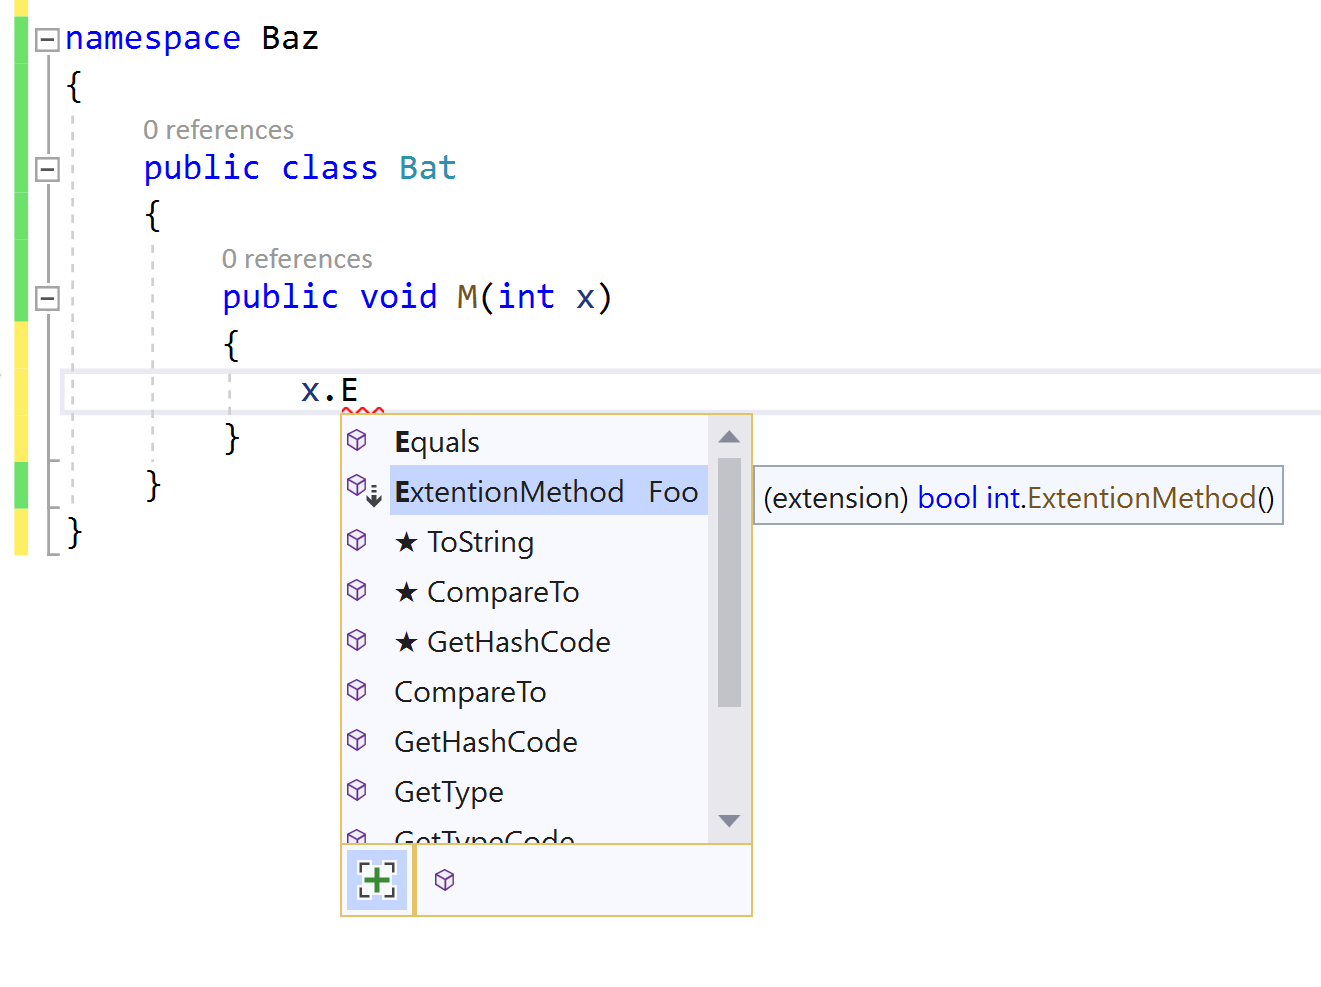 IntelliSense completion for unimported extension methods